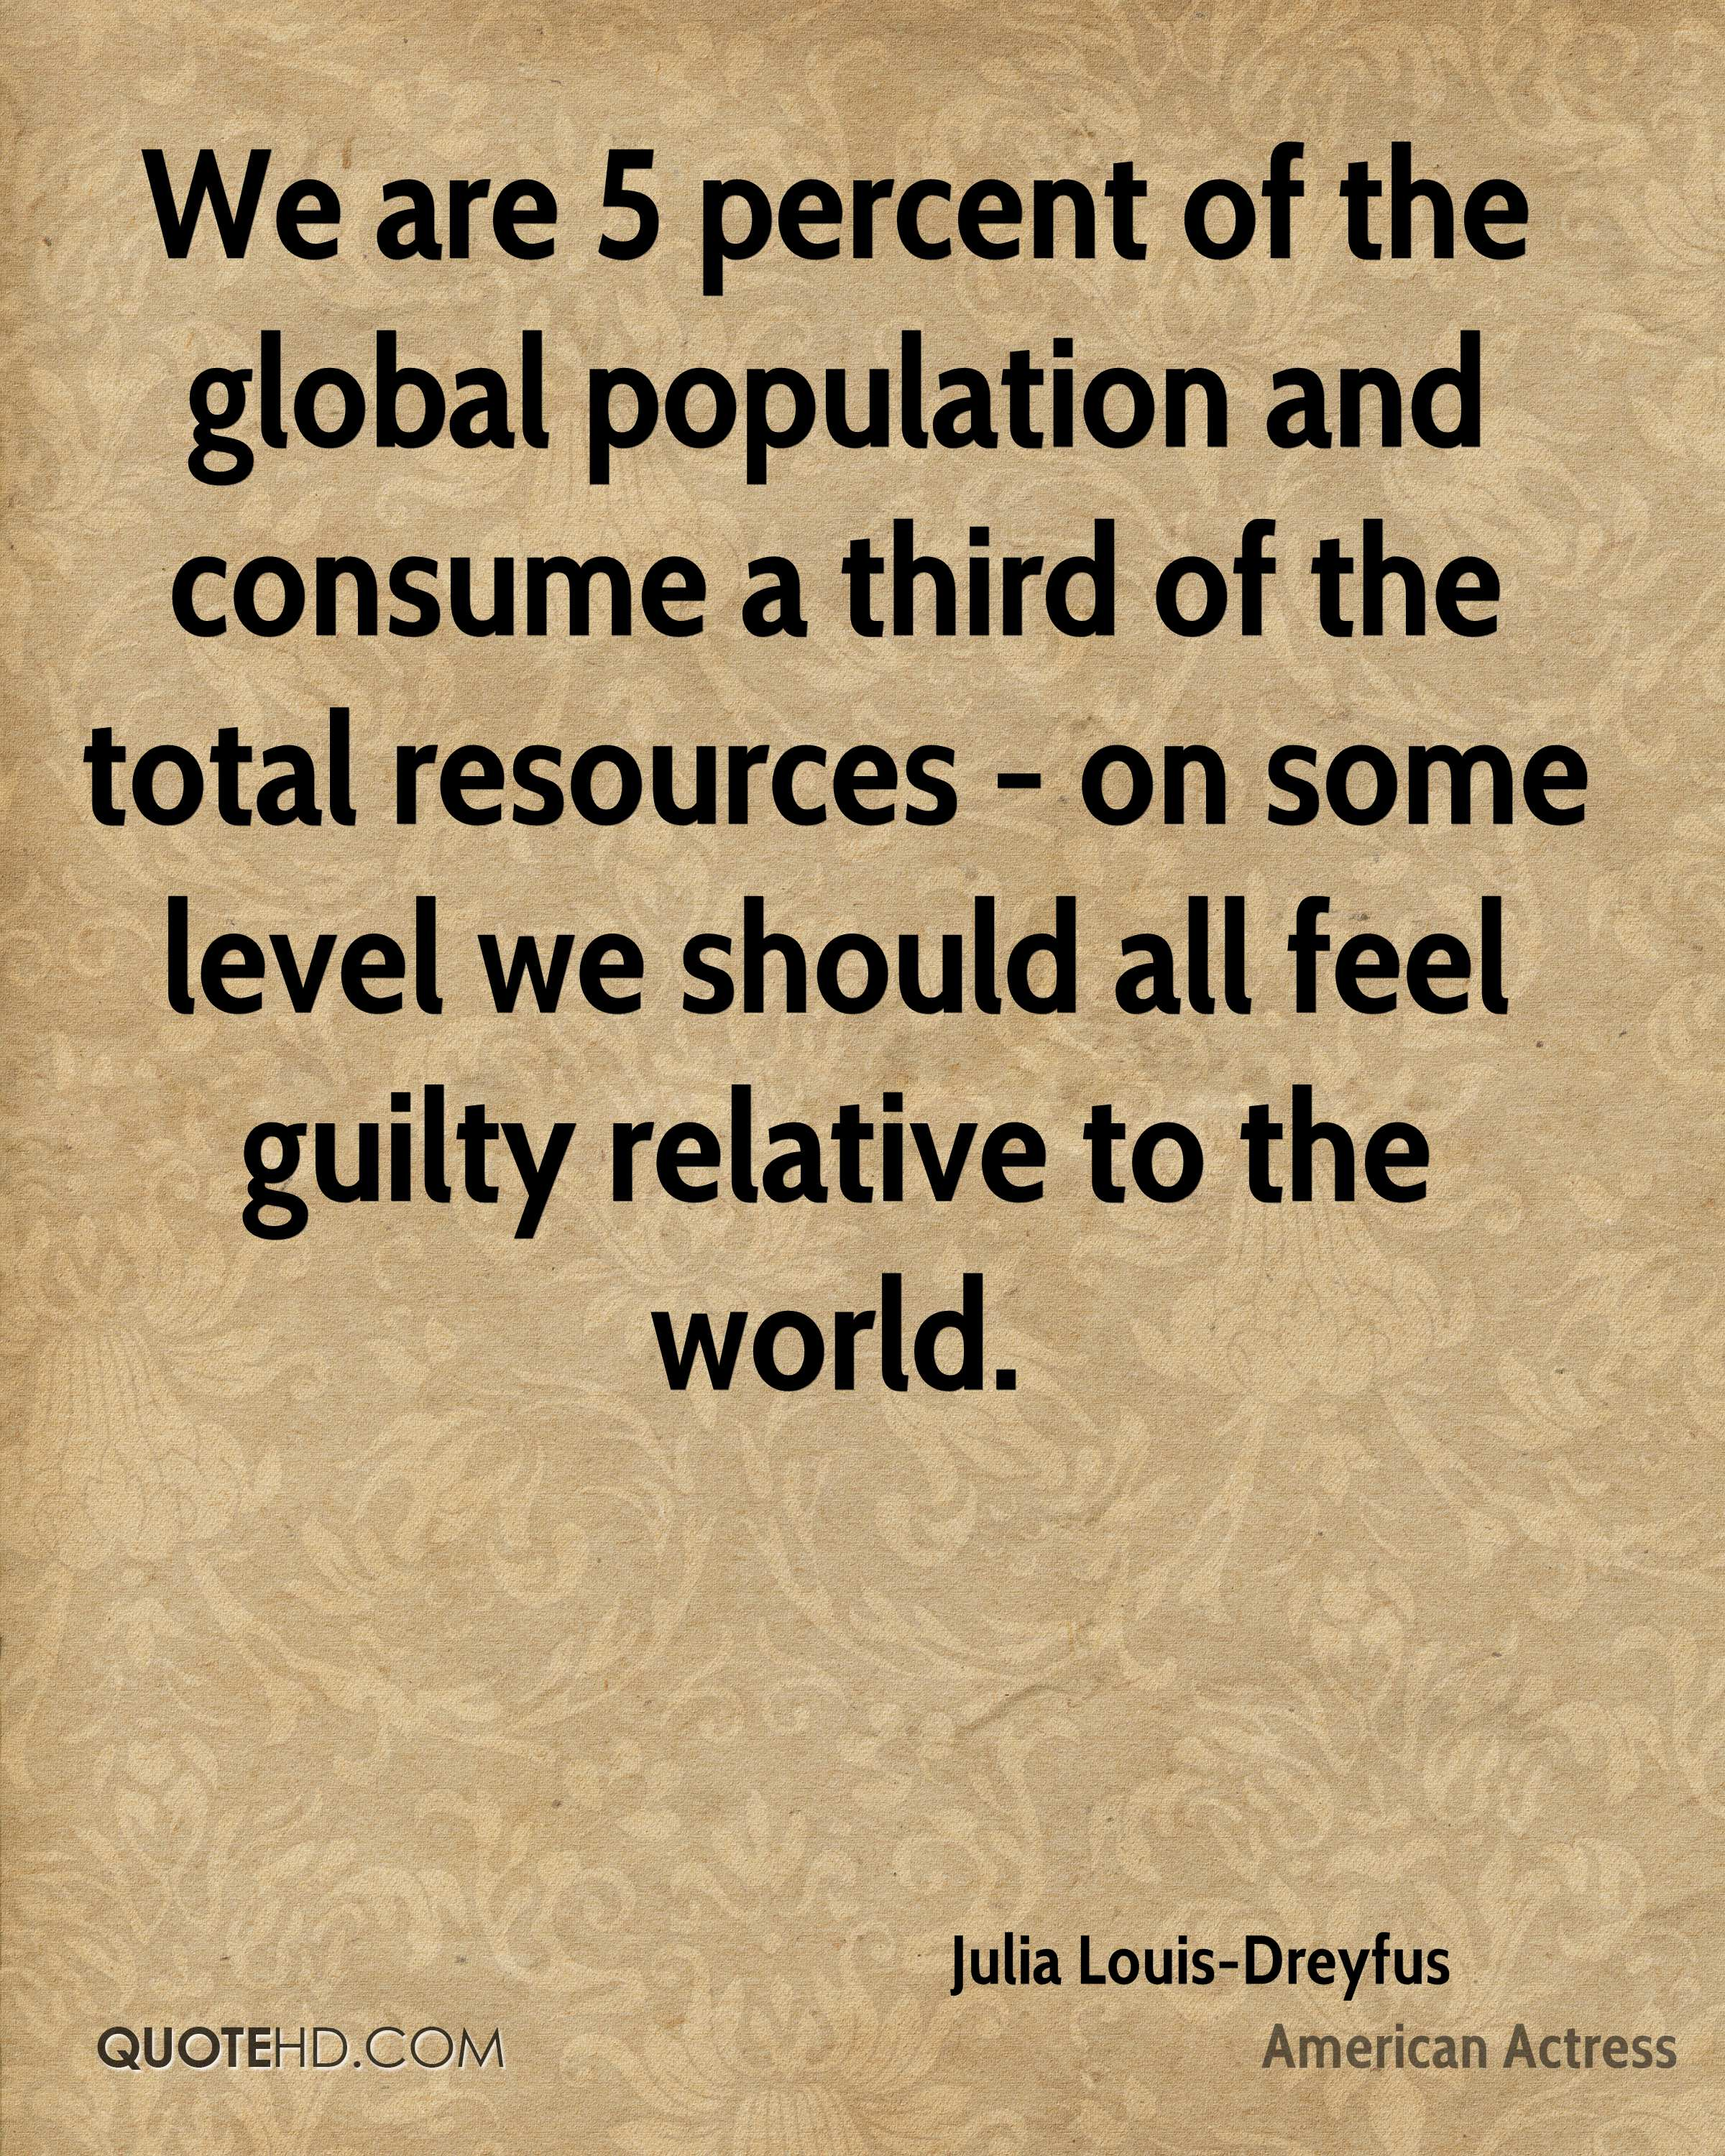 We are 5 percent of the global population and consume a third of the total resources - on some level we should all feel guilty relative to the world.